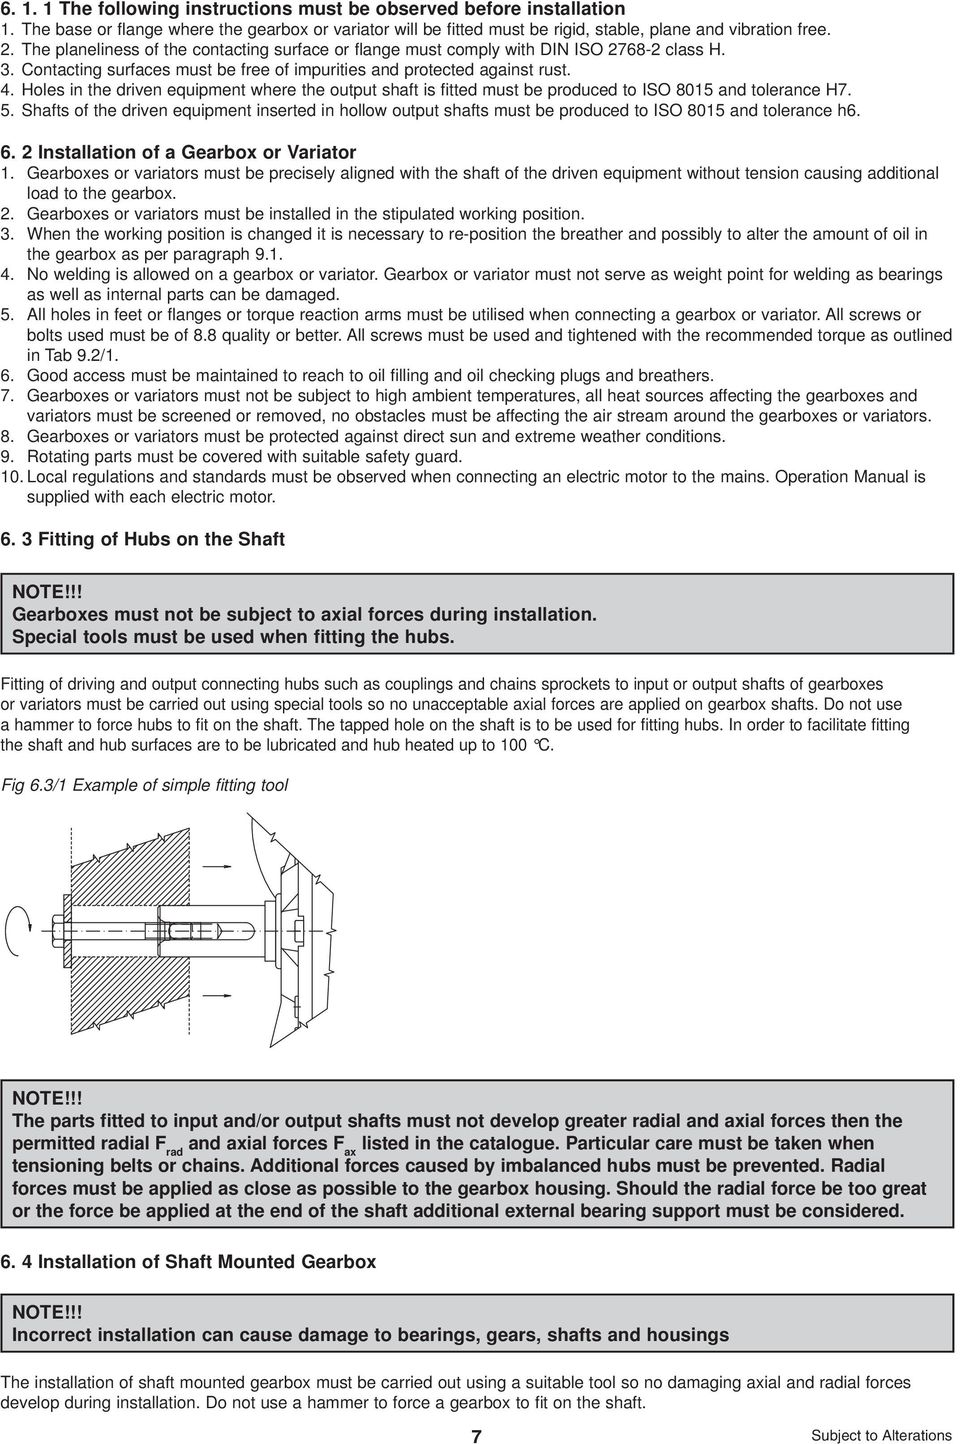 INSTALLATION, OPERATION AND MAINTENANCE MANUAL FOR GEARBOXES